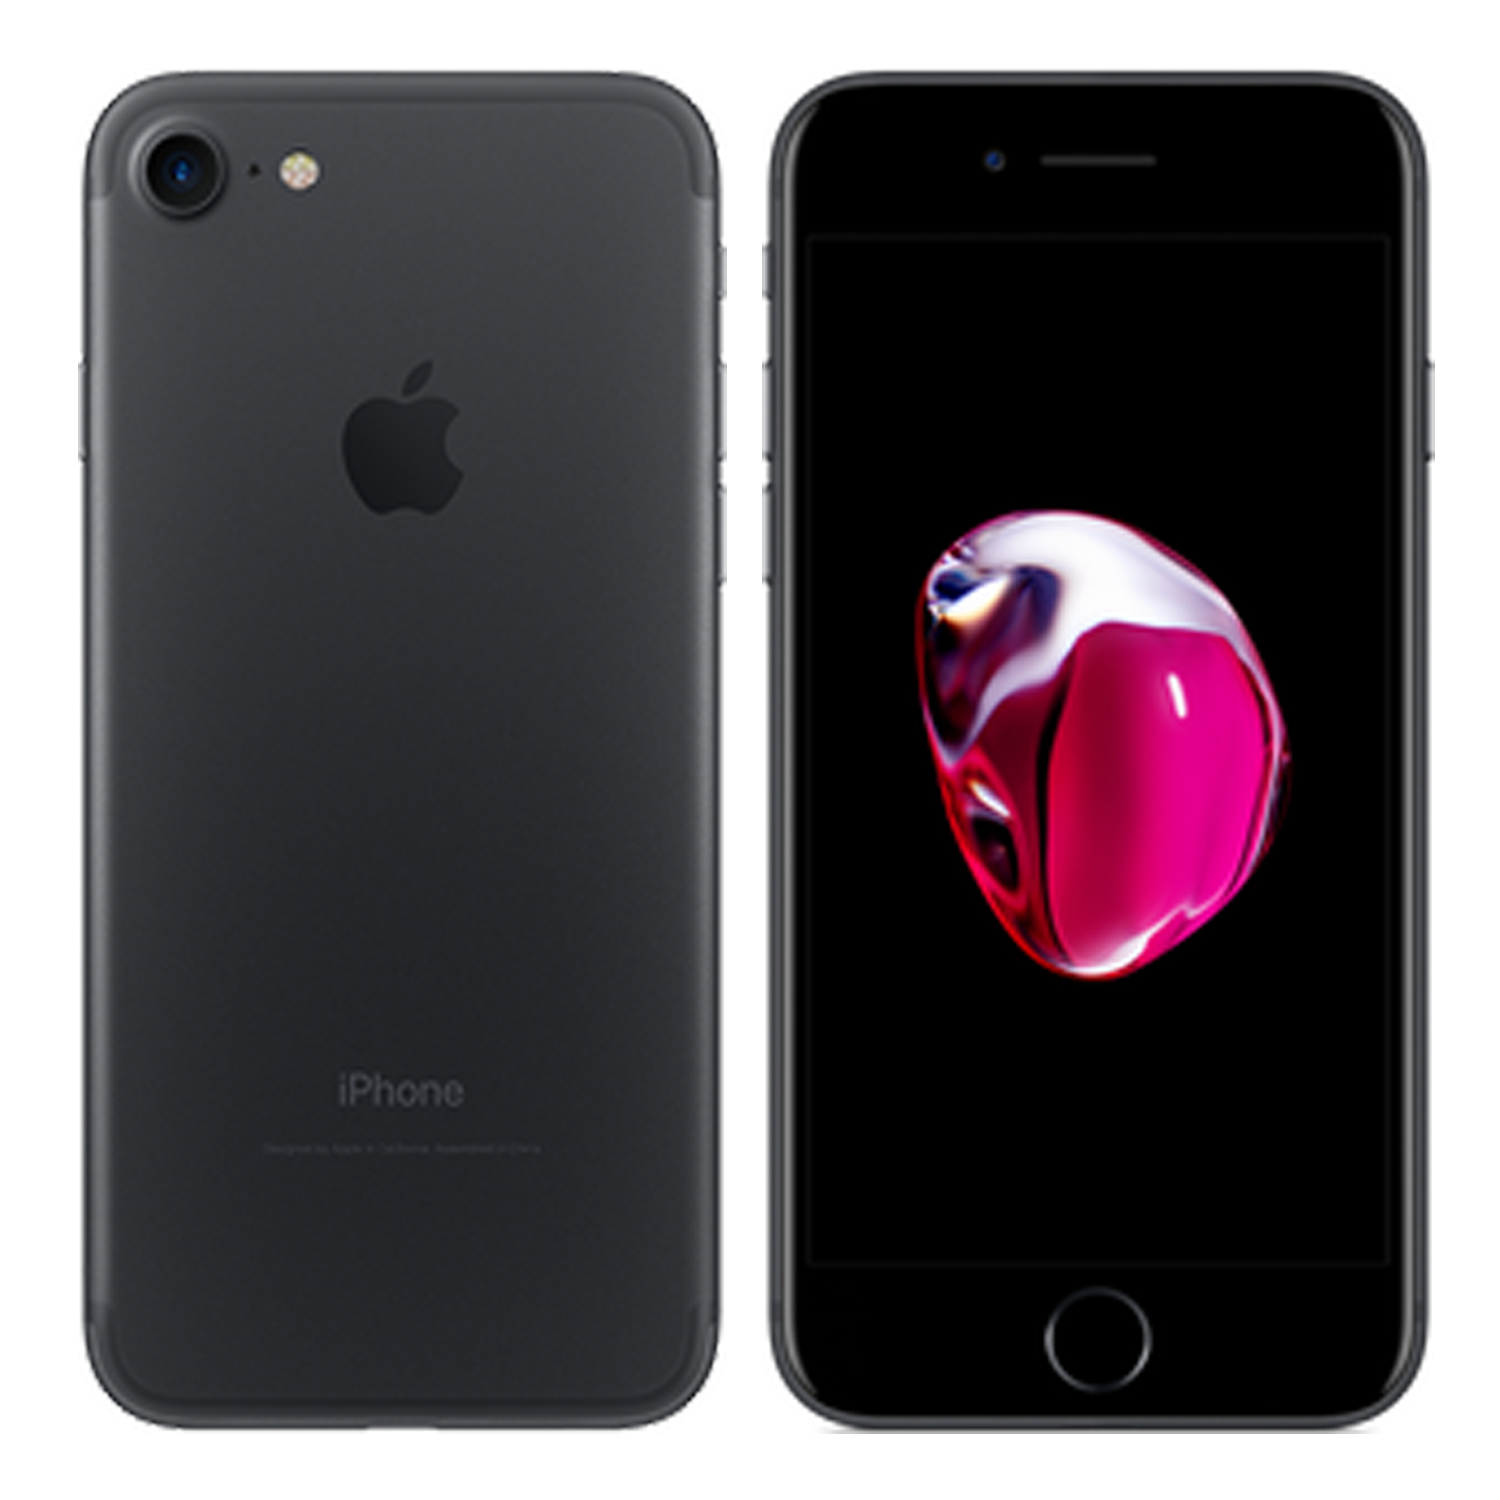 big sale 6eaa1 3102f Apple iPhone 7 with FaceTime – 32GB, 4G LTE